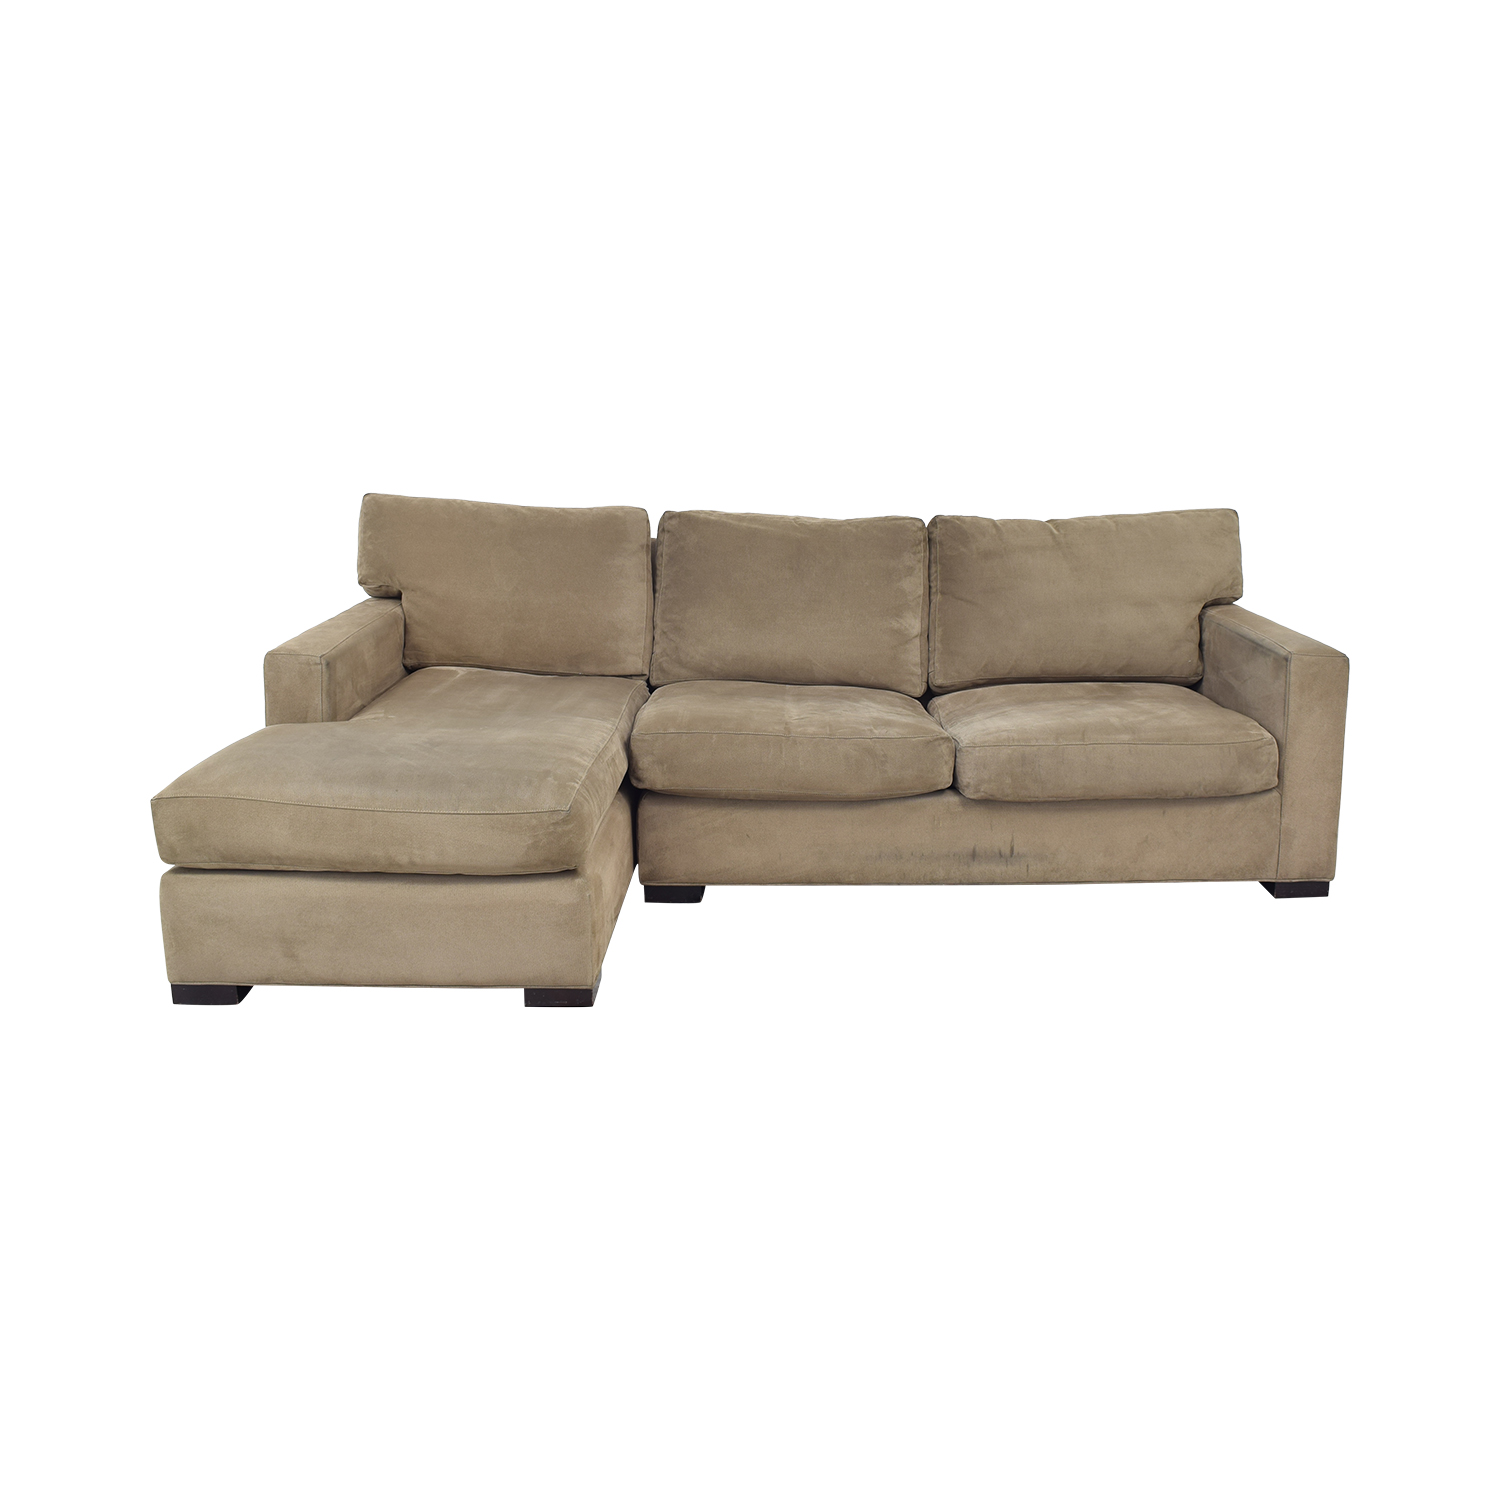 buy Crate & Barrel Crate & Barrel Axis II Sectional Sofa online